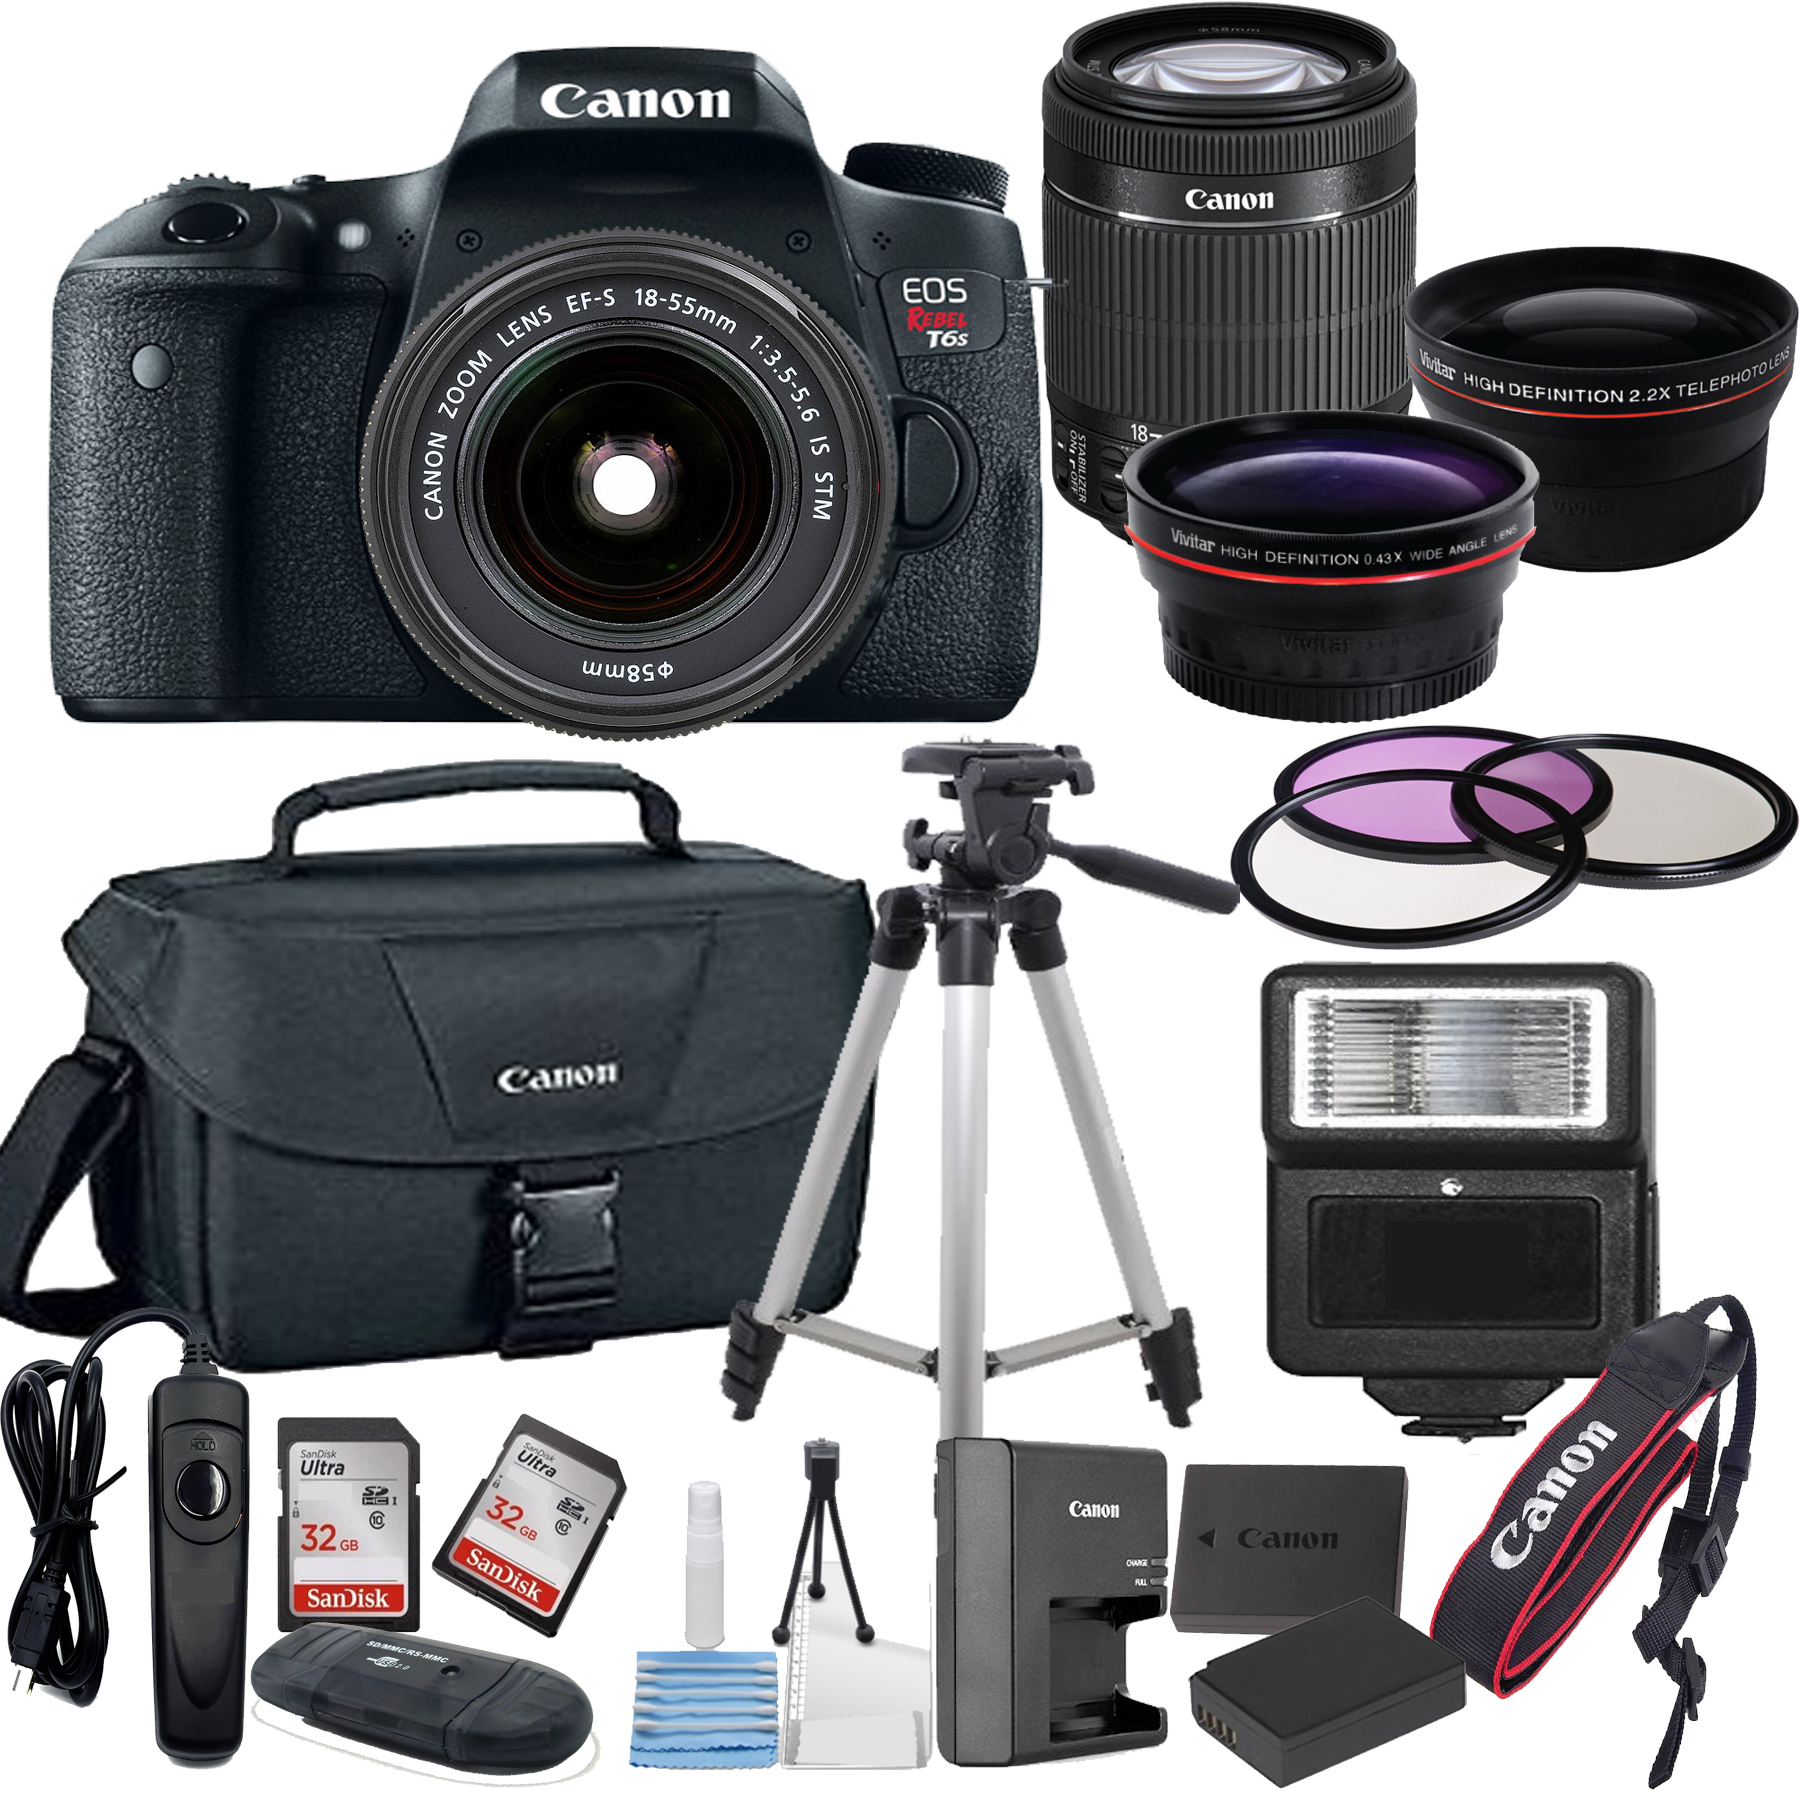 Canon EOS Rebel T6S Digital SLR Camera w/ EF-S 18-55mm Bundle includes Camera, Lenses, Filters, Bag, Memory Cards, Tripod, Flash, Remote Shutter , Cleaning Kit, Replacement Battery ,  Tripod ,and More